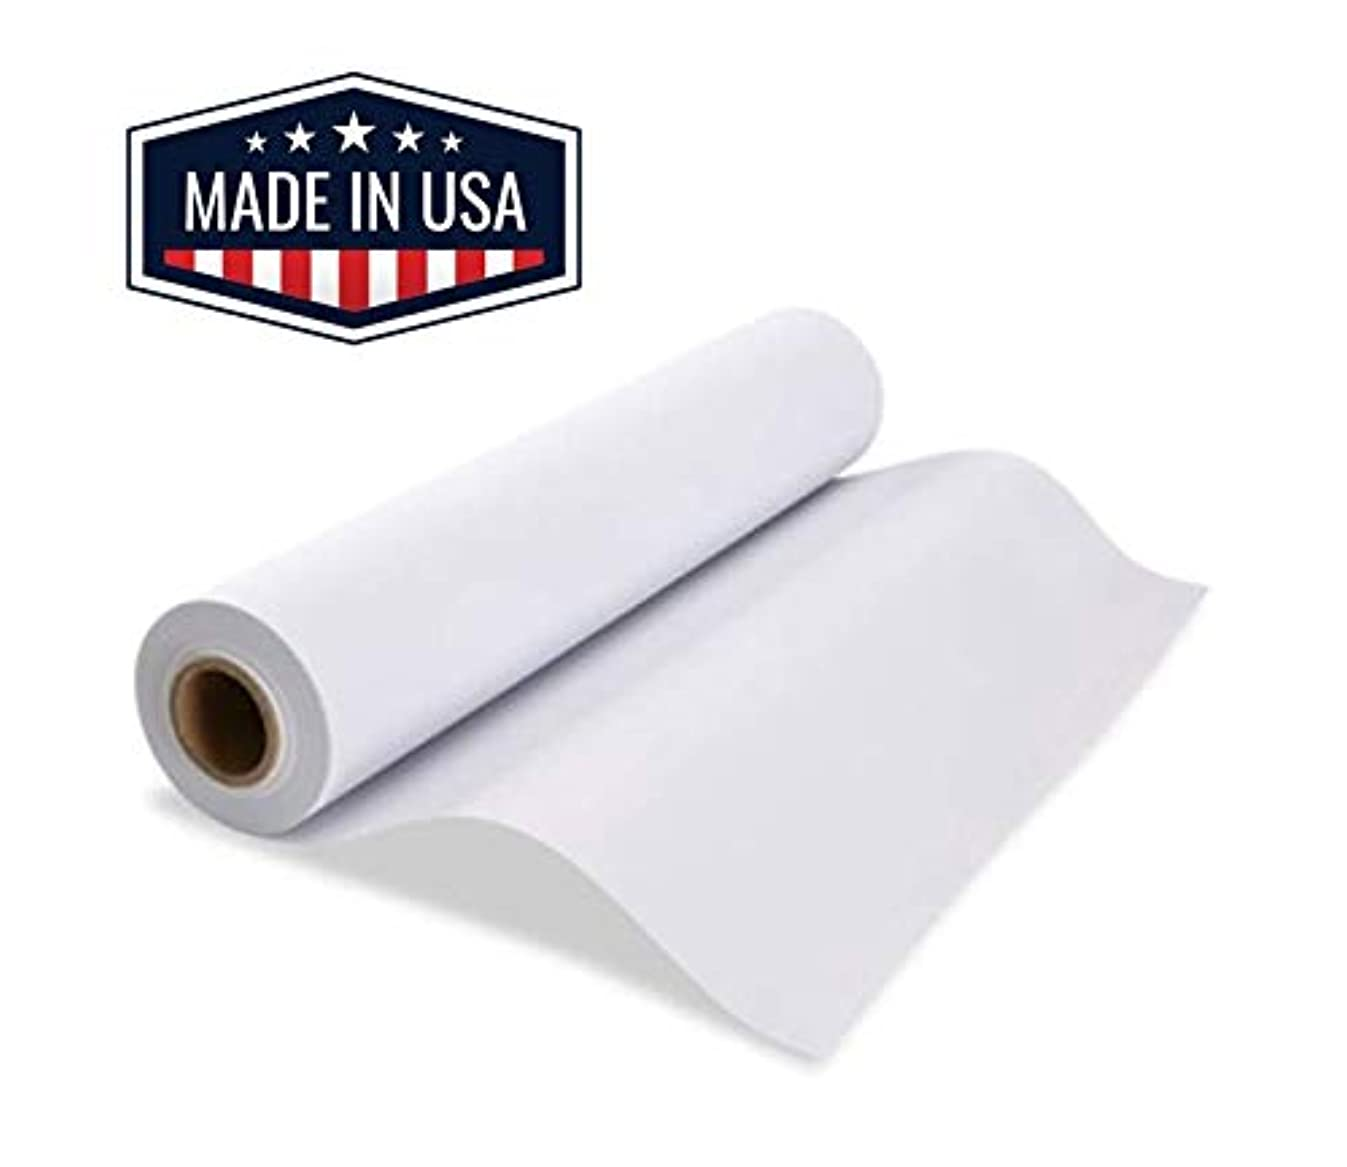 Made in USA White Butcher Paper Roll 17.75